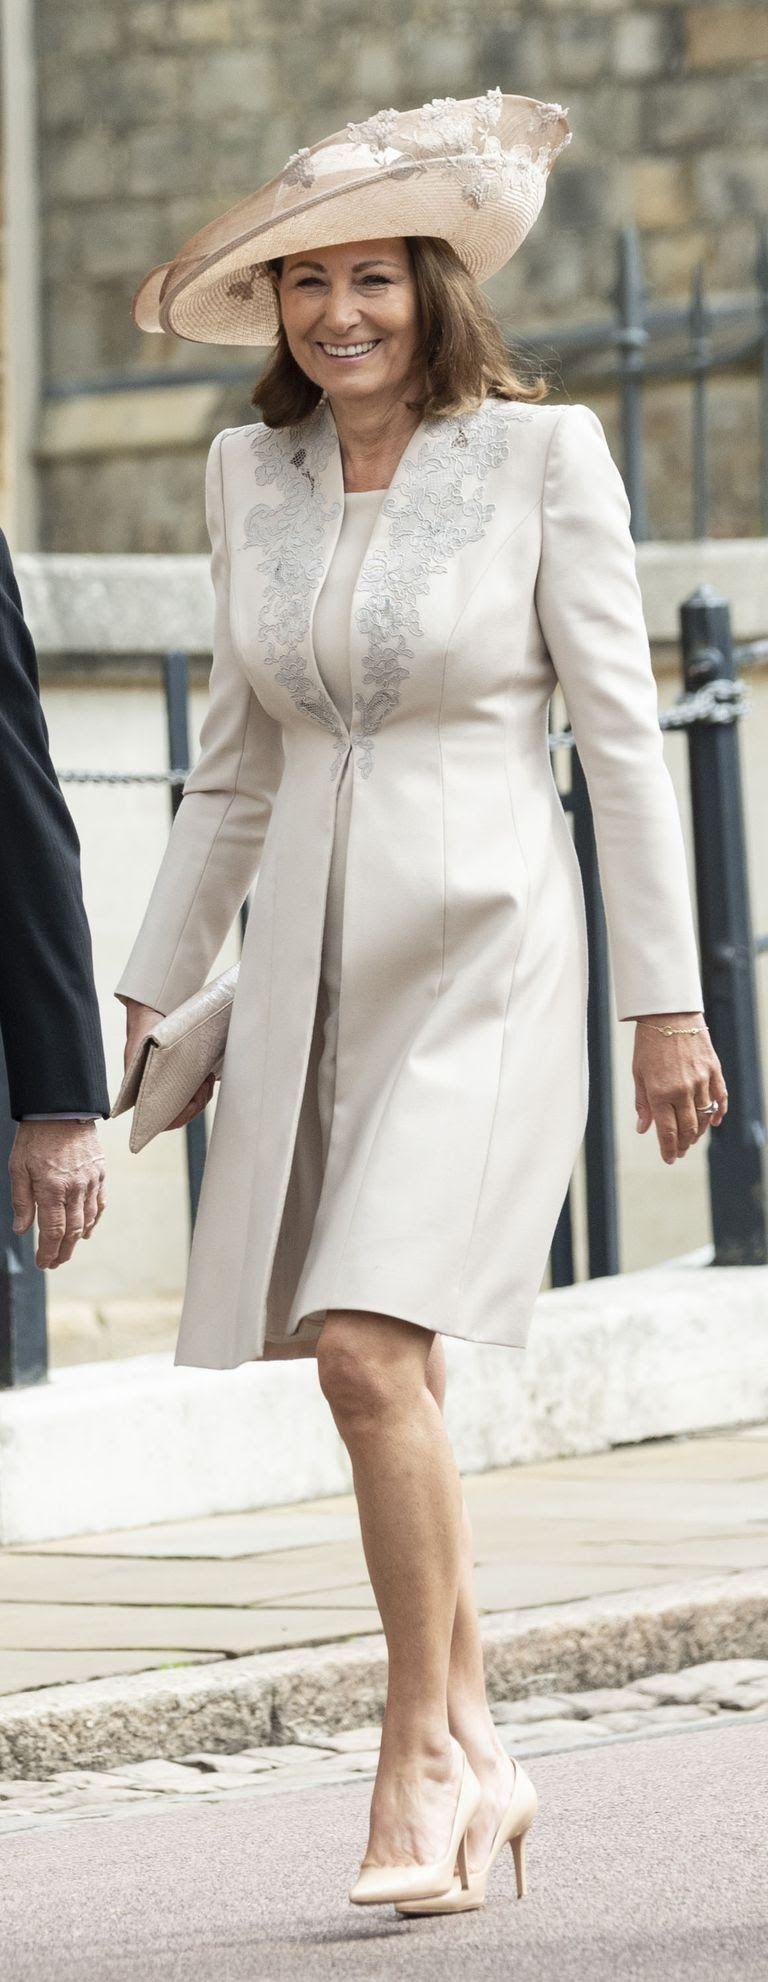 carole-middleton-attends-the-wedding-of-lady-gabriella-news-photo-1144556031-1558182077.jpg